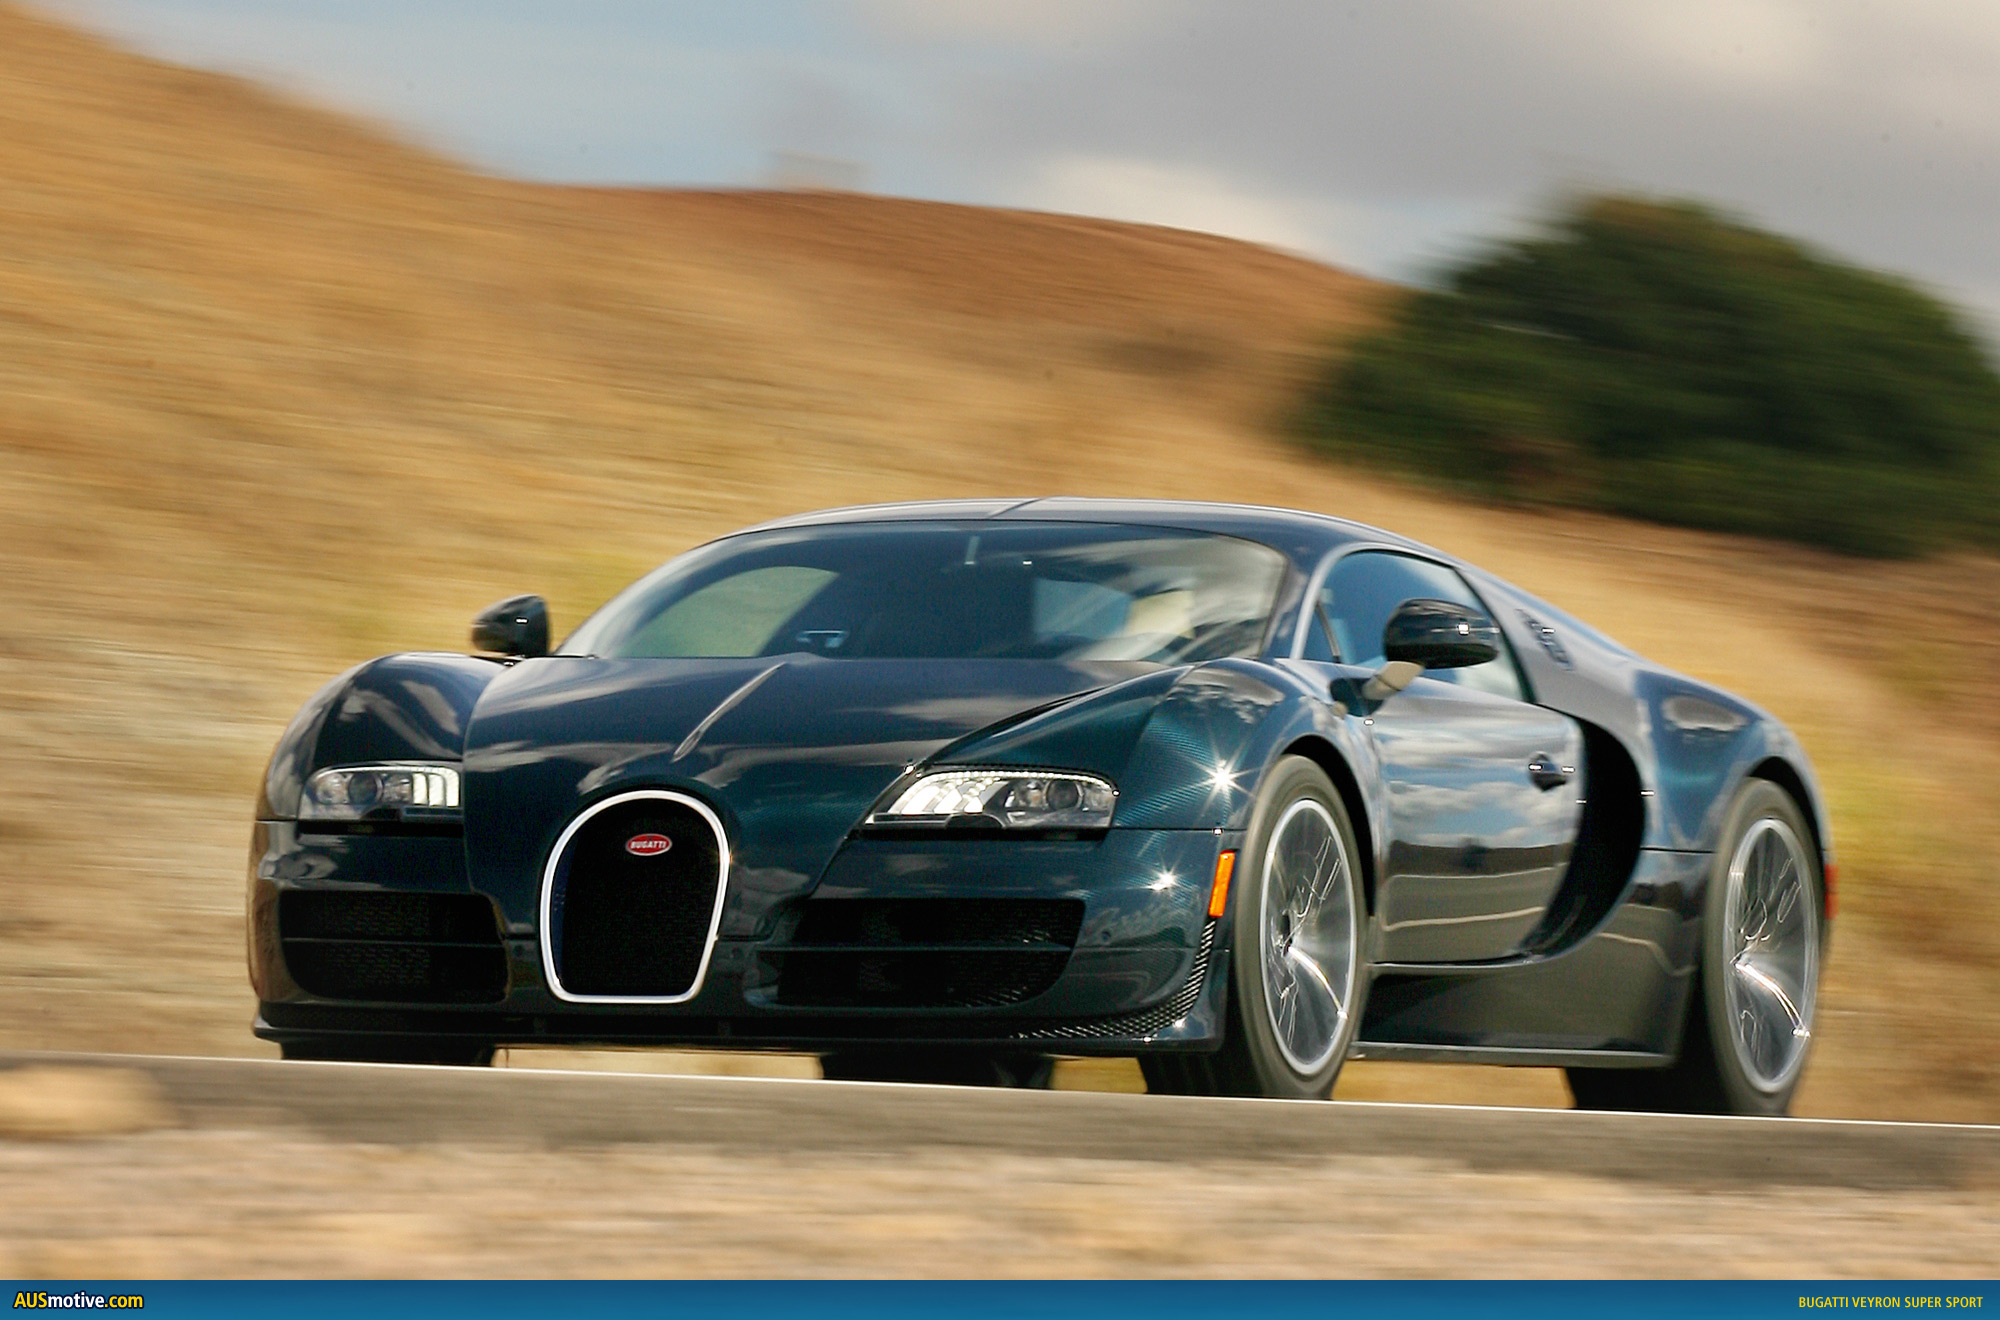 AUSmotive.com » Bugatti Veyron Super Sport photo gallery